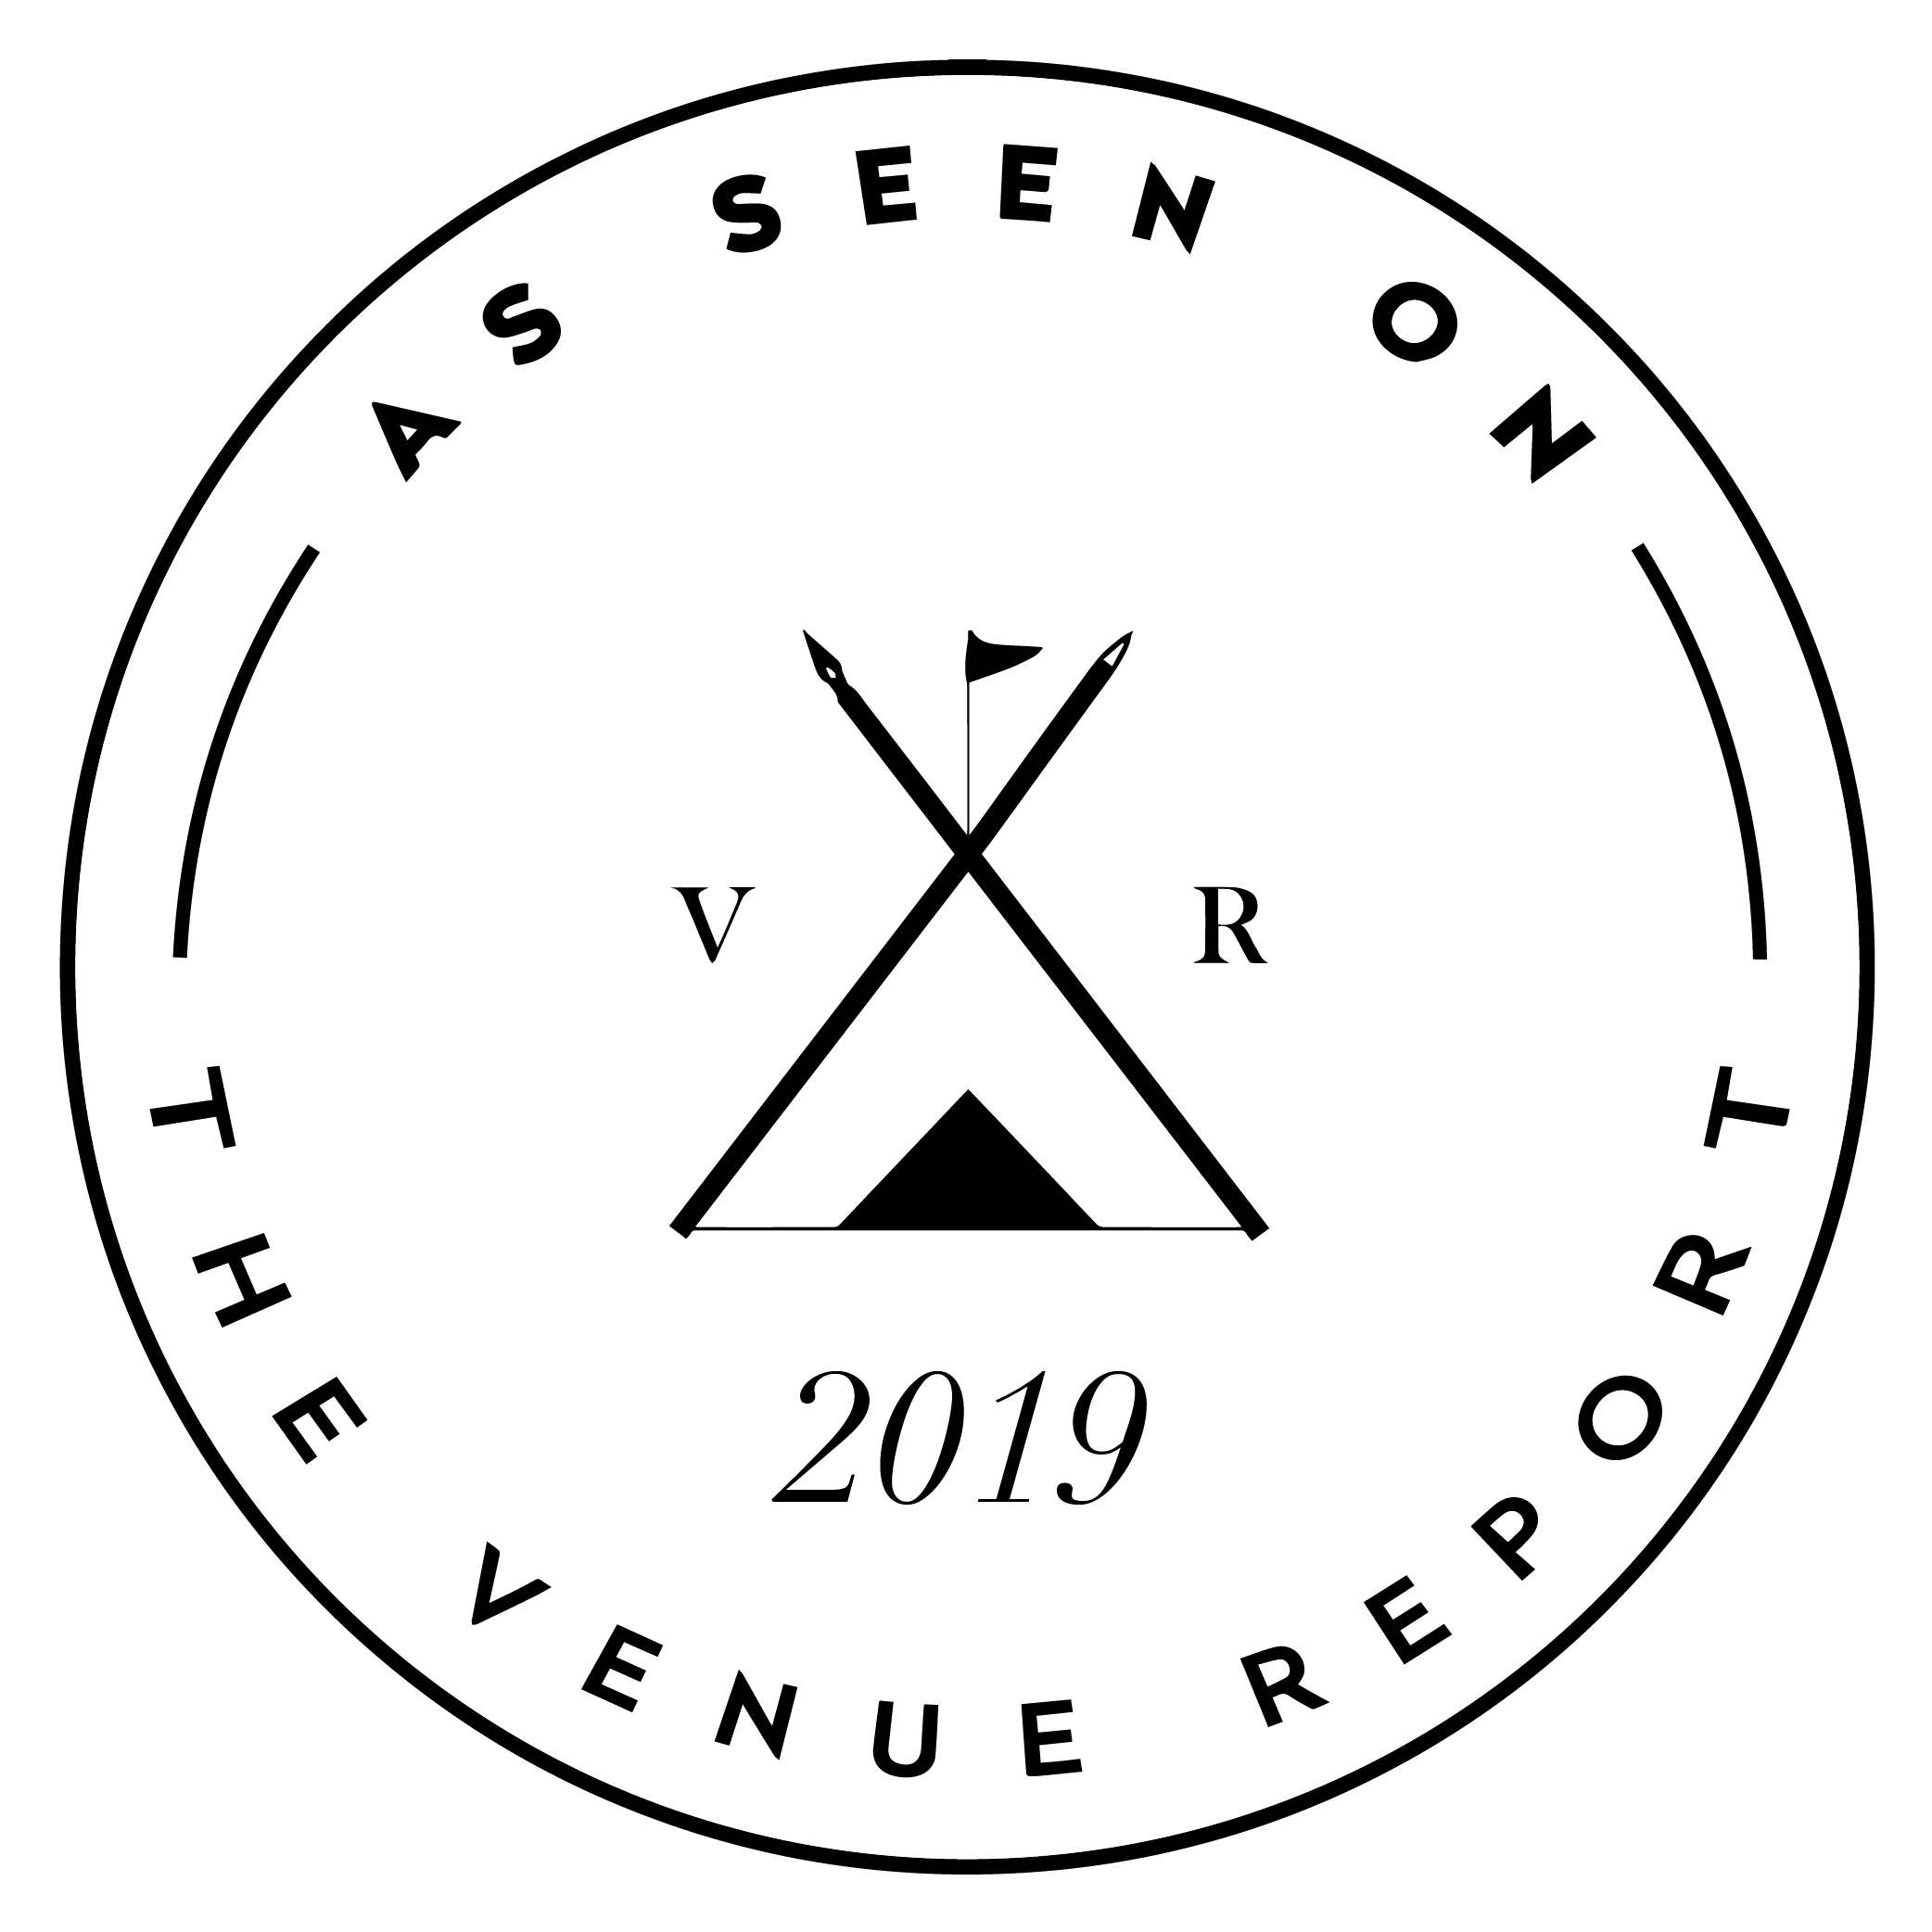 TheVenueReport-Badge-AsSeenOn-2019.png